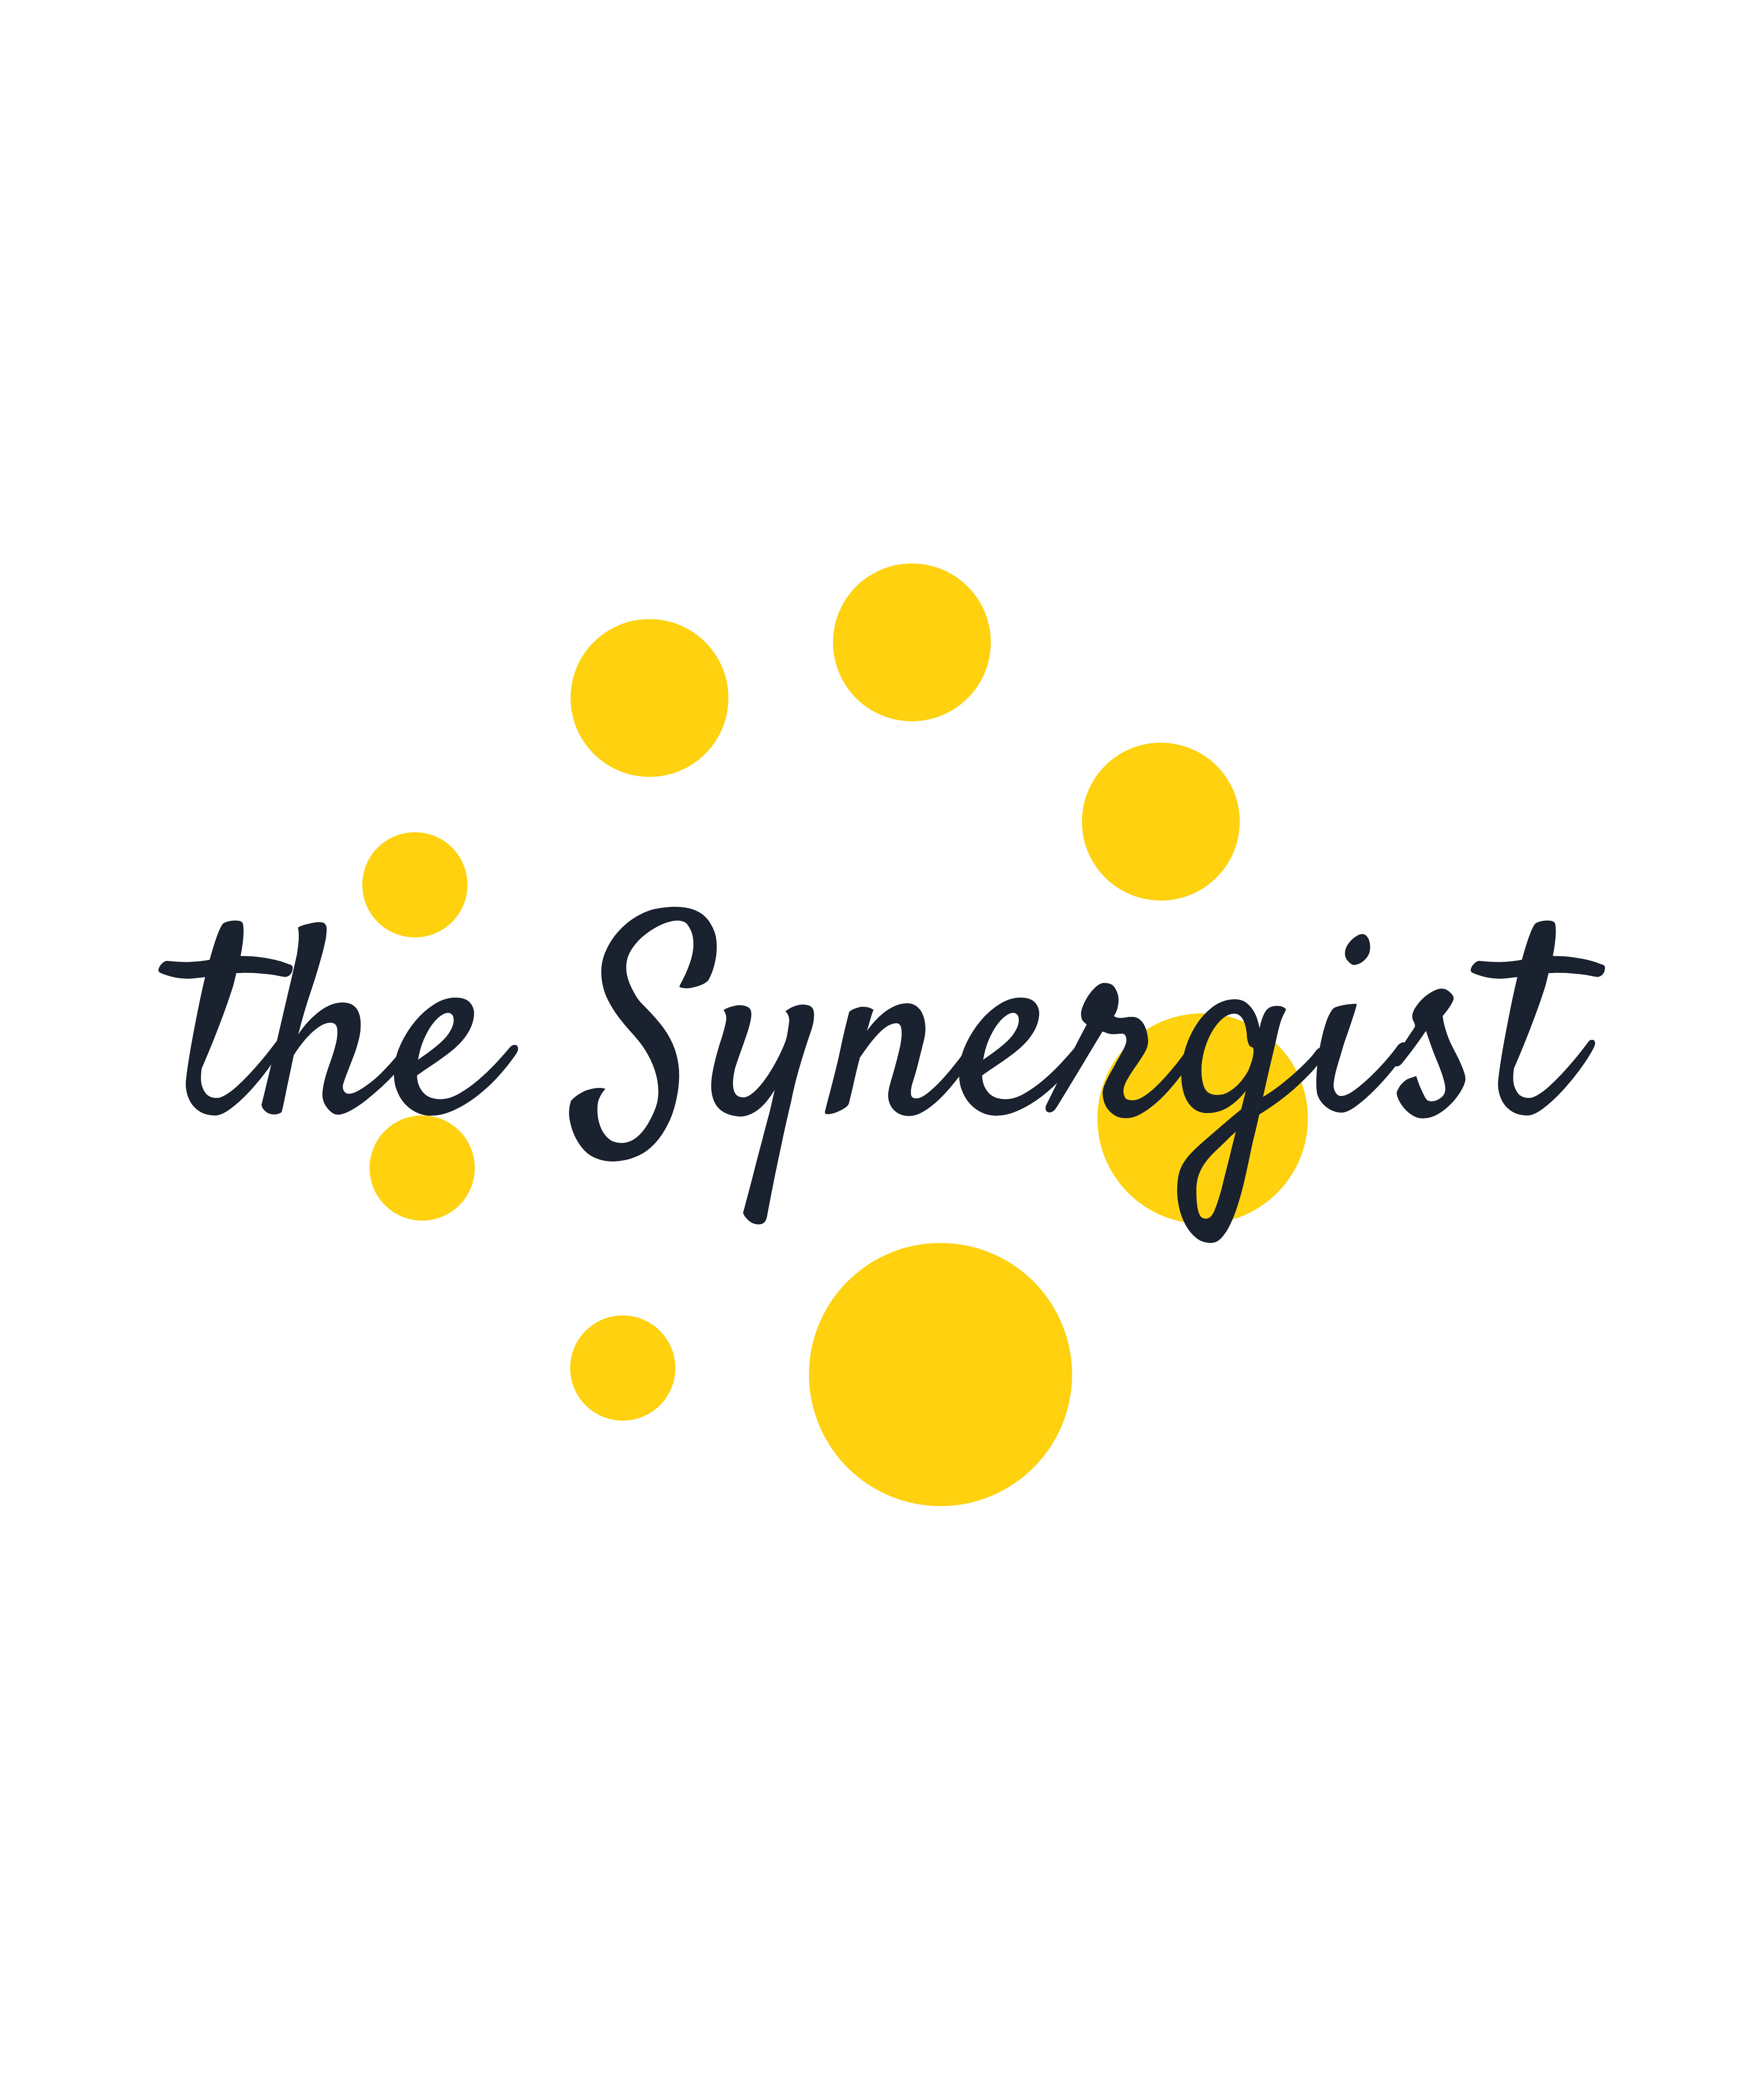 the synergist website